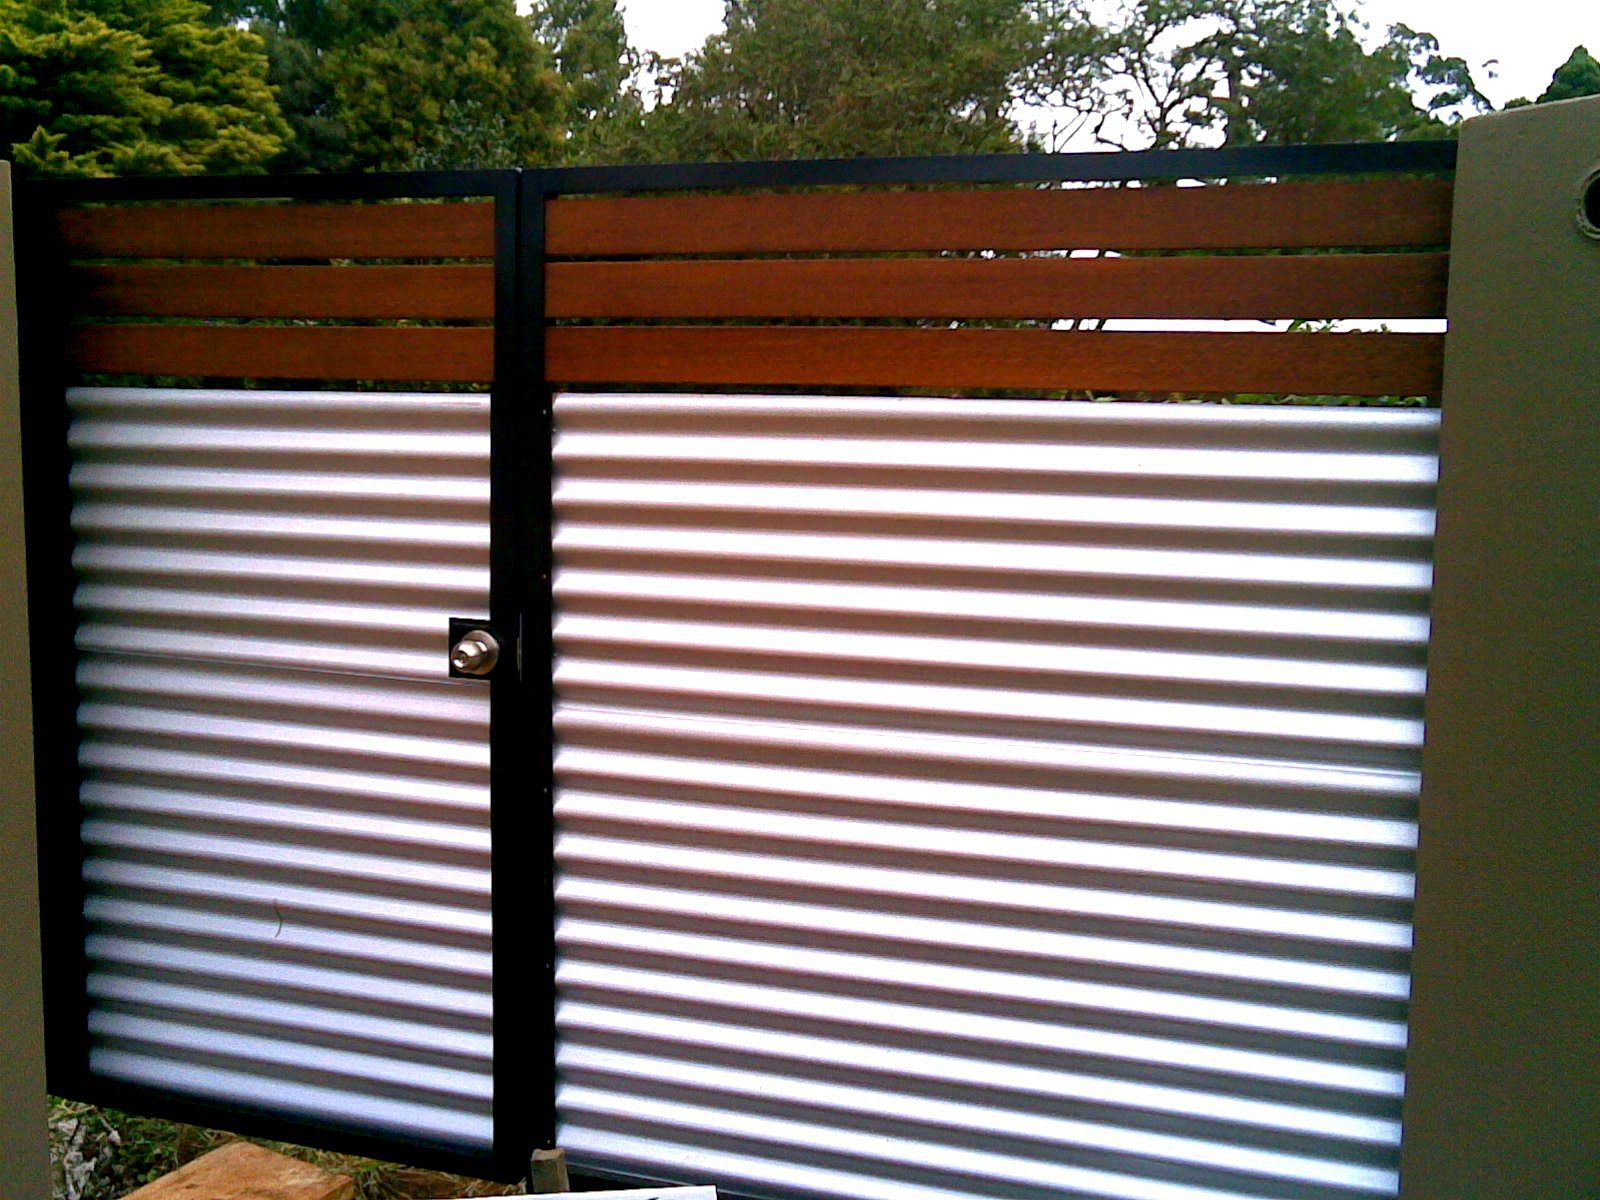 Wood With Corrugated Metal Corrugated Metal Fence Fence Design